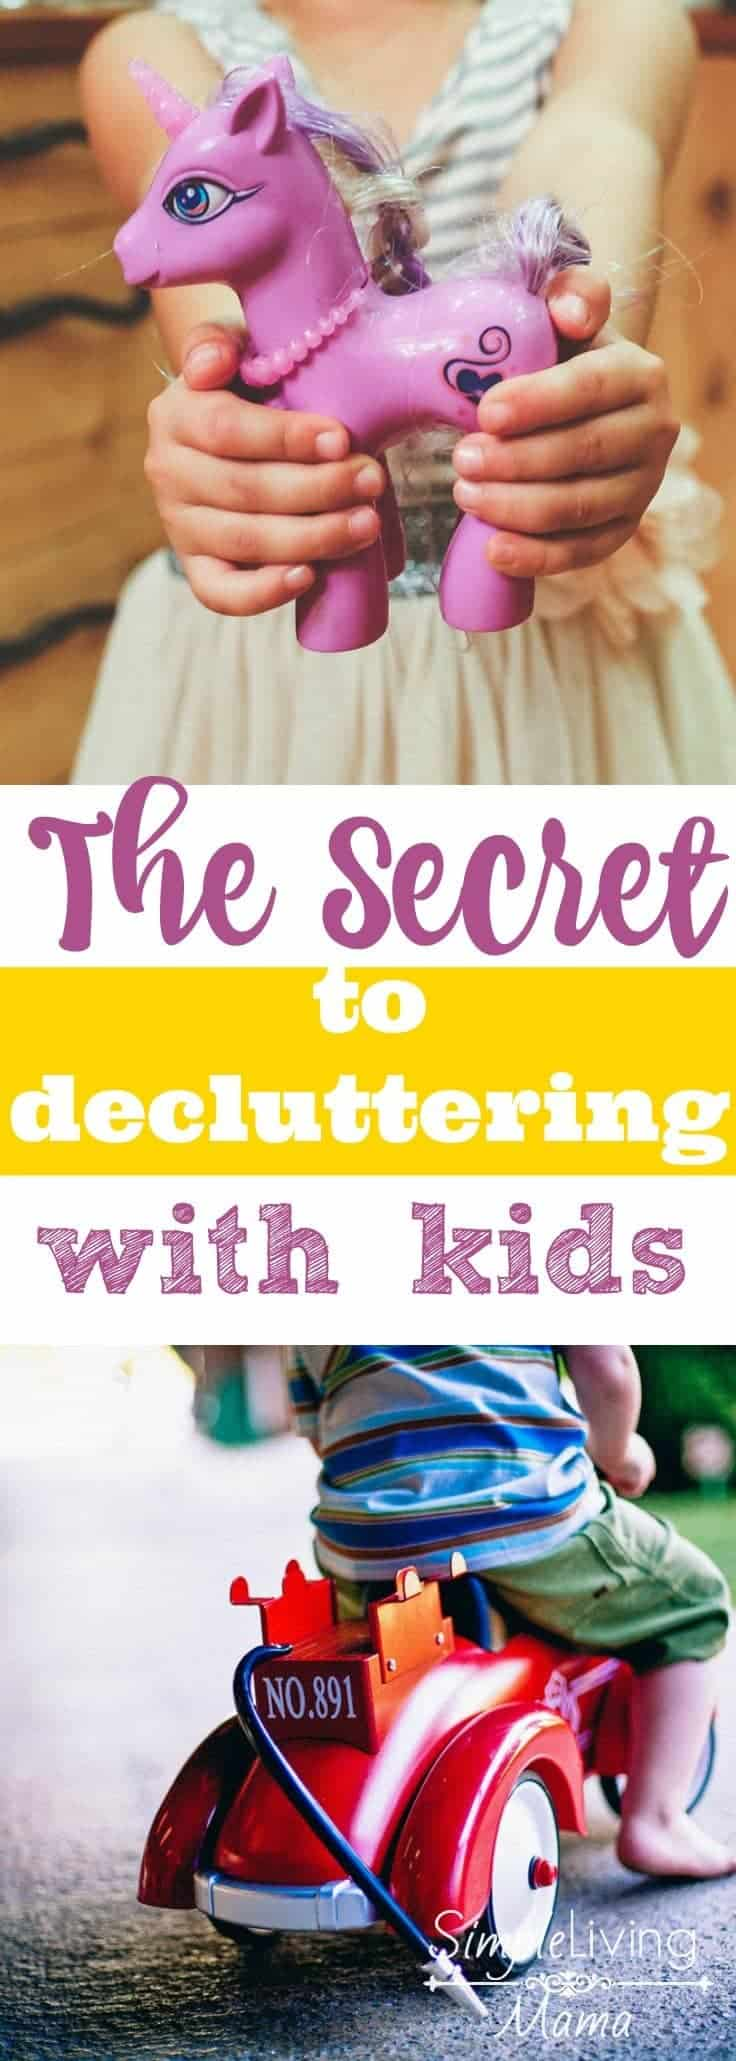 Want to know my secret to declutter kids' rooms? Here are my best tips to clean the closets and toy bins.